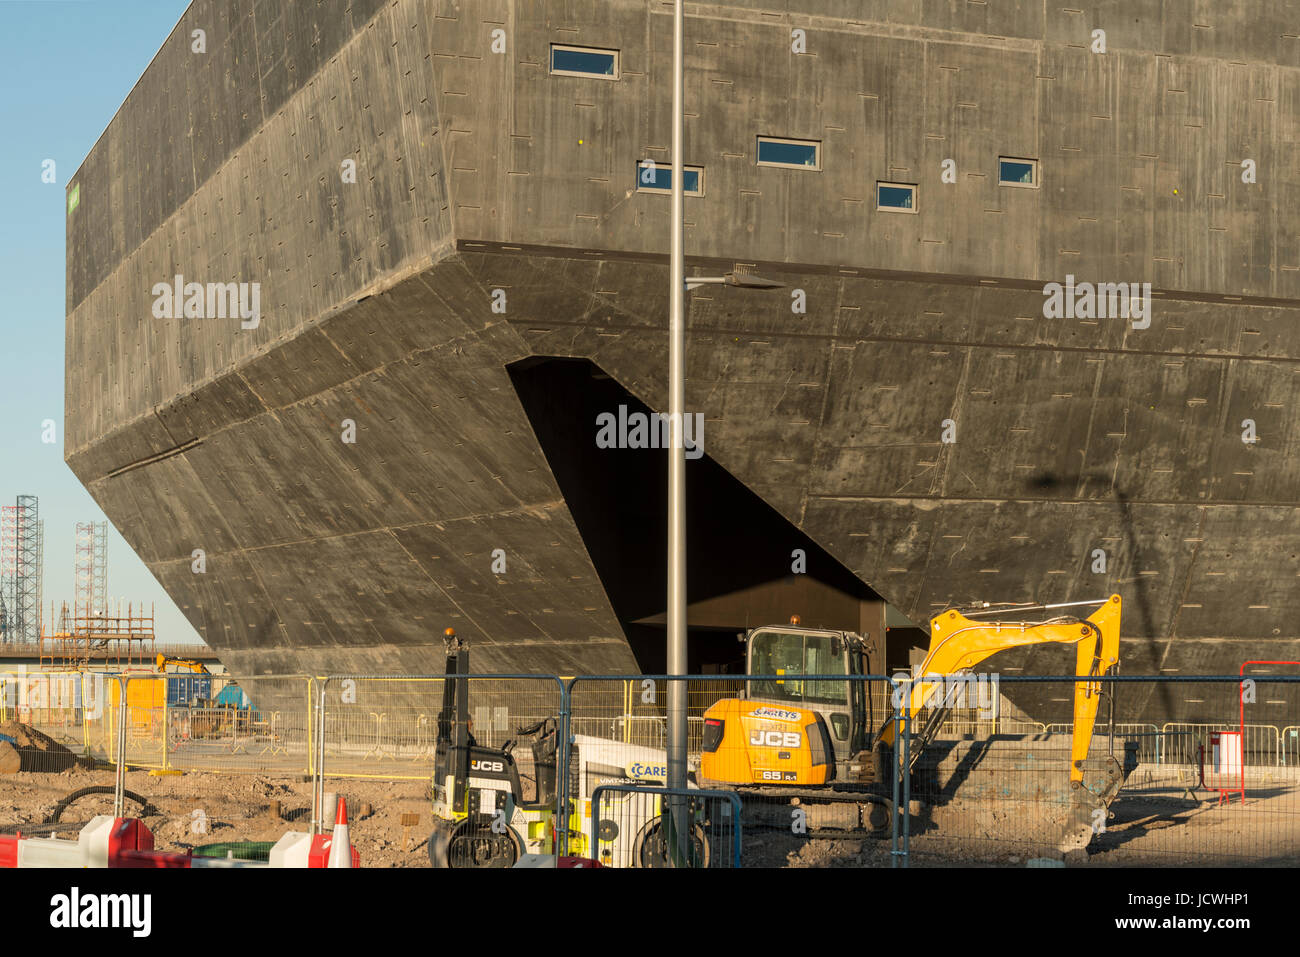 V&A Design museum under construction, Dundee waterfront, Dundee, Scotland, UK - Stock Image